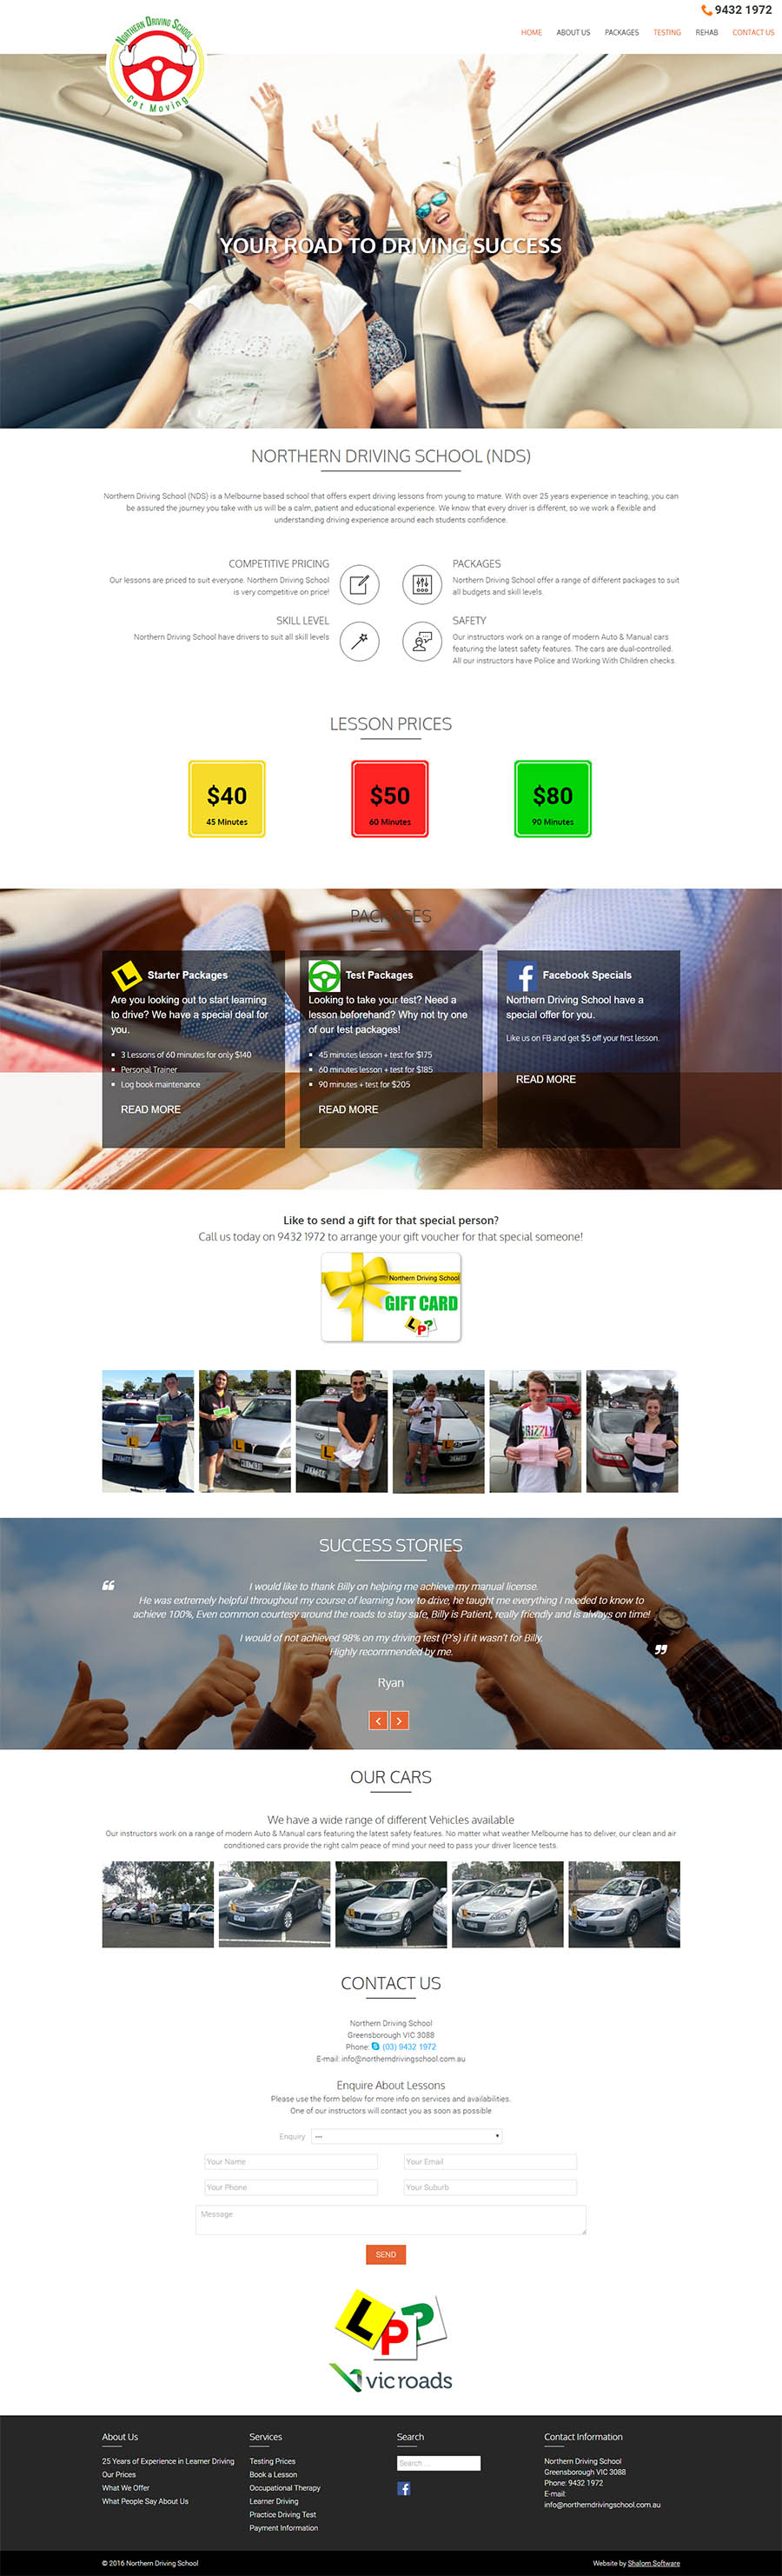 Northern Driving Website Screenshot